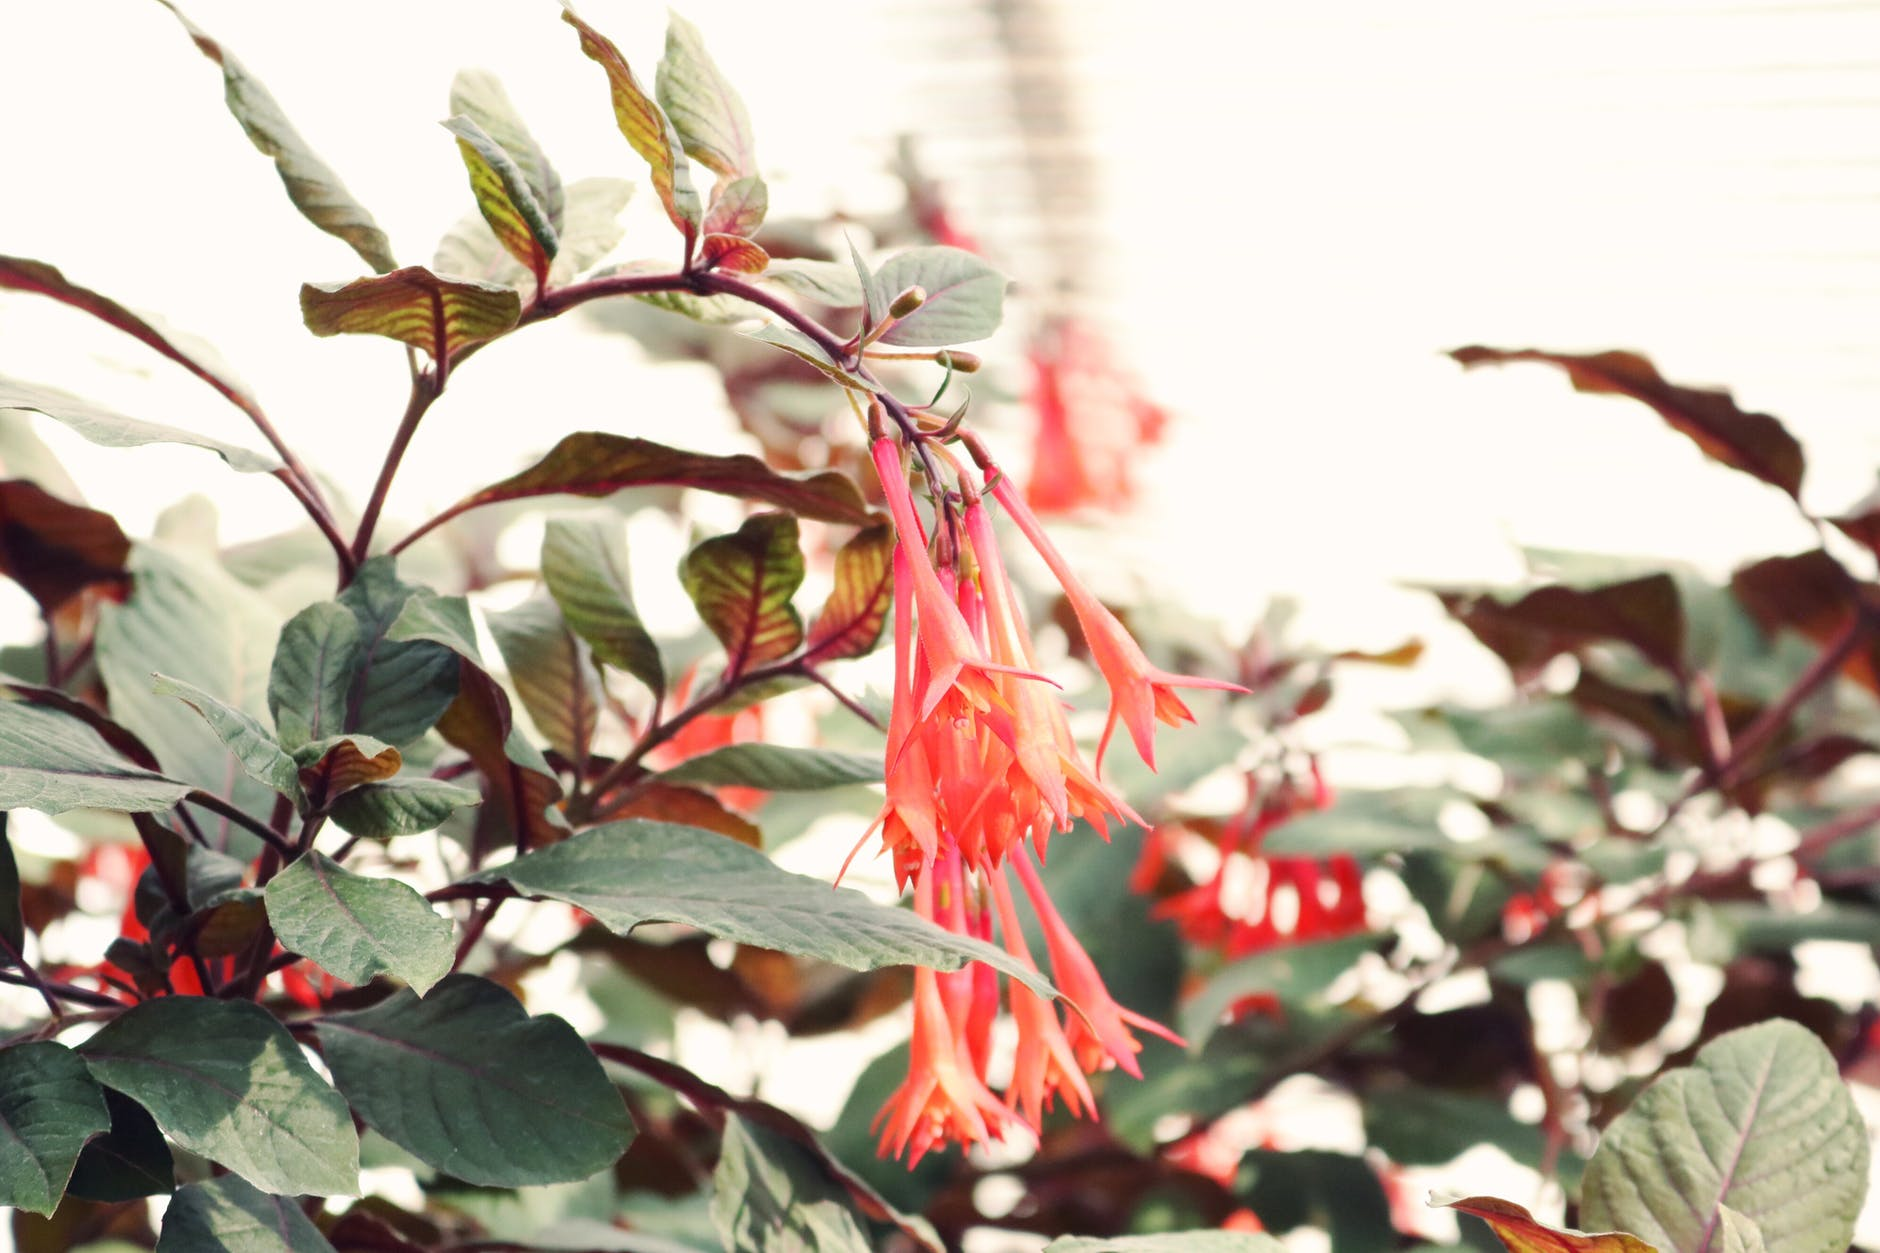 Honeysuckle | Stunning Climbing Plants Perfect For Trellis And Arbors